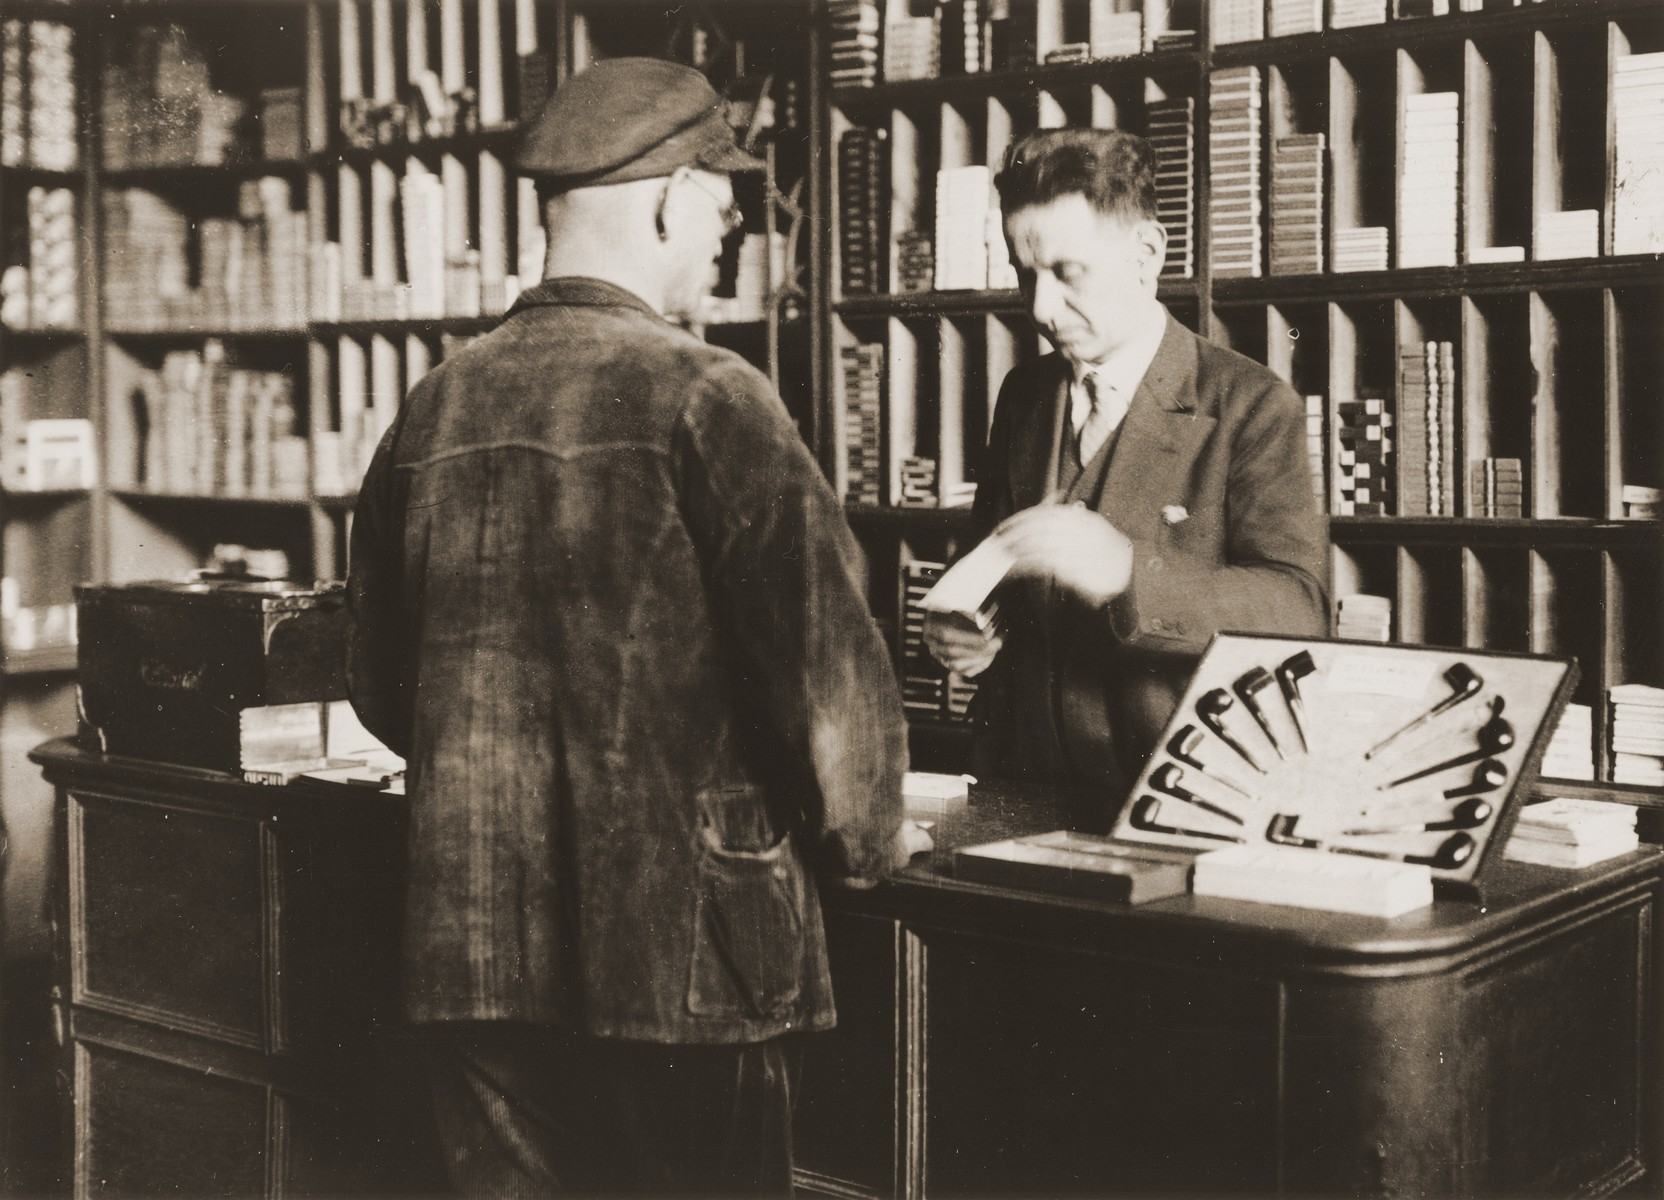 Arthur Lewy confers with a customer in his tobacco shop in Berlin.